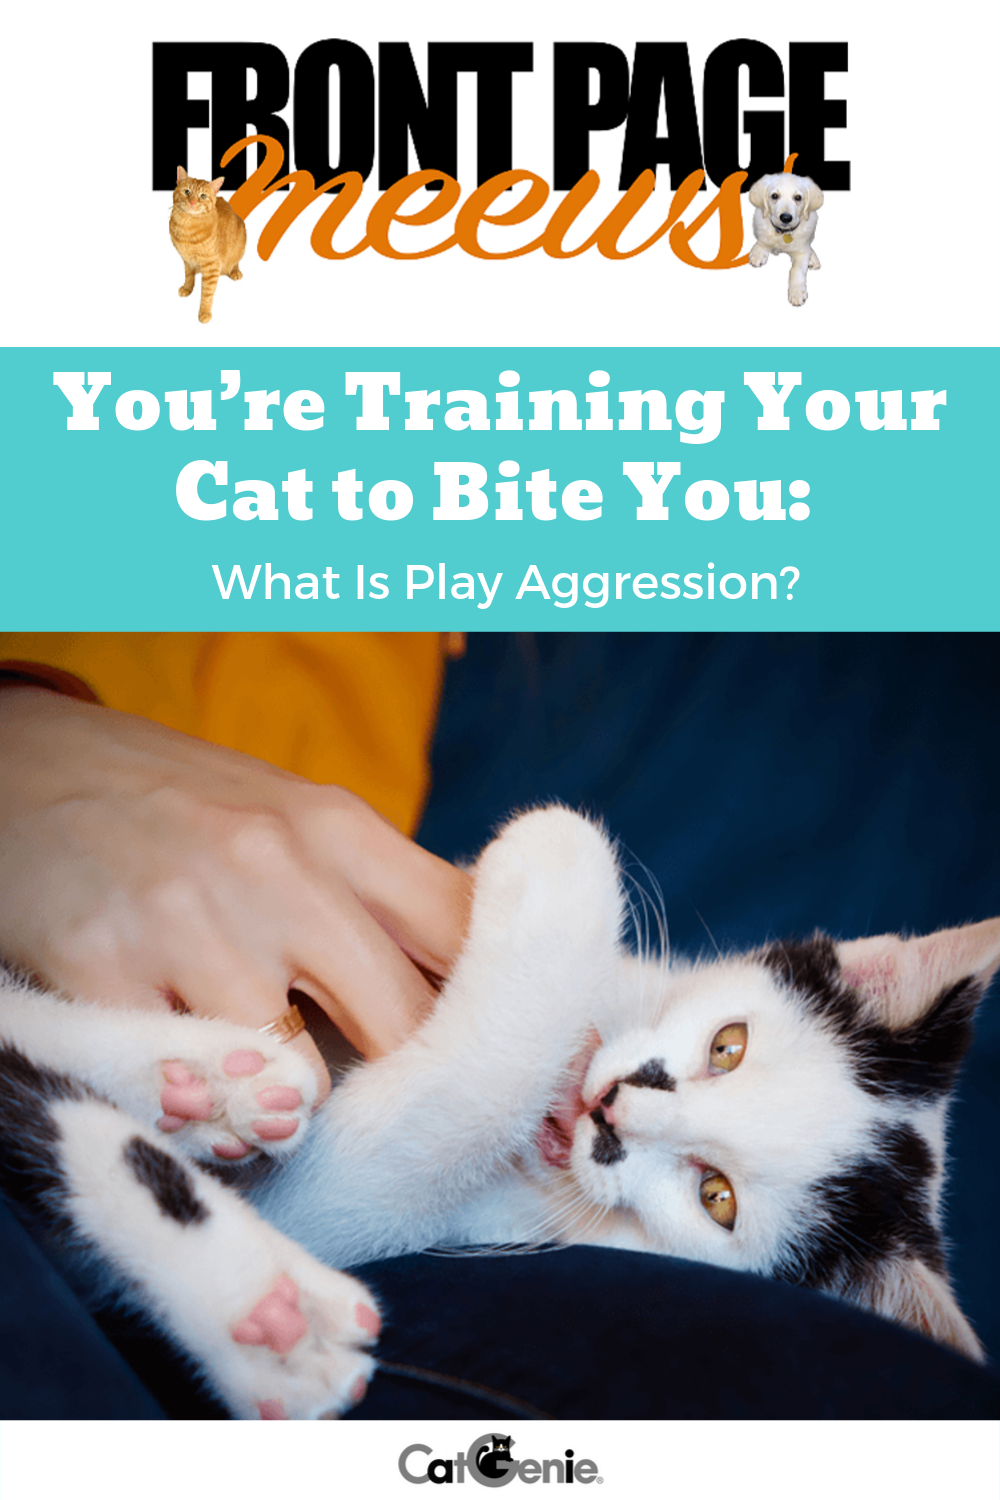 You Re Training Your Cat To Bite You What Is Play Aggression In 2020 Cat Behavior Aggressive What Is Play